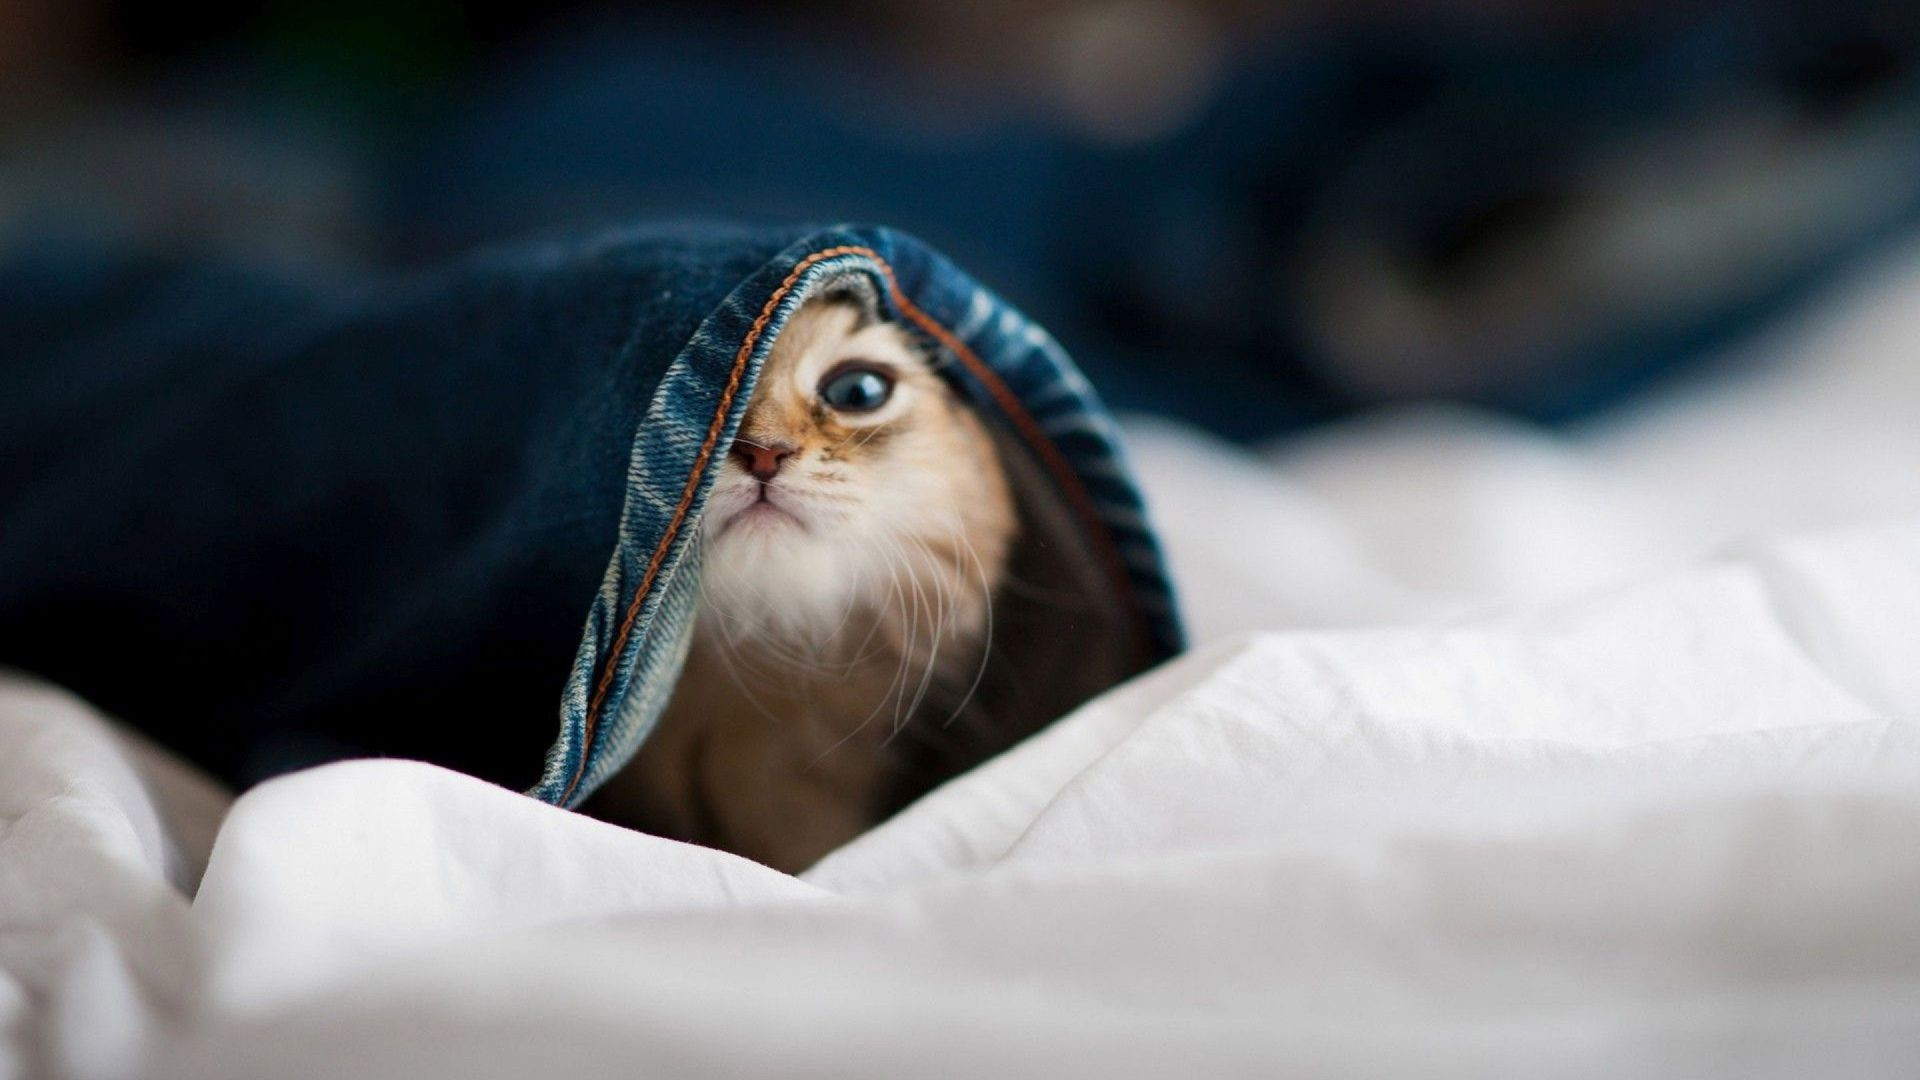 Cute Baby Animals Wallpapers (61+ images)